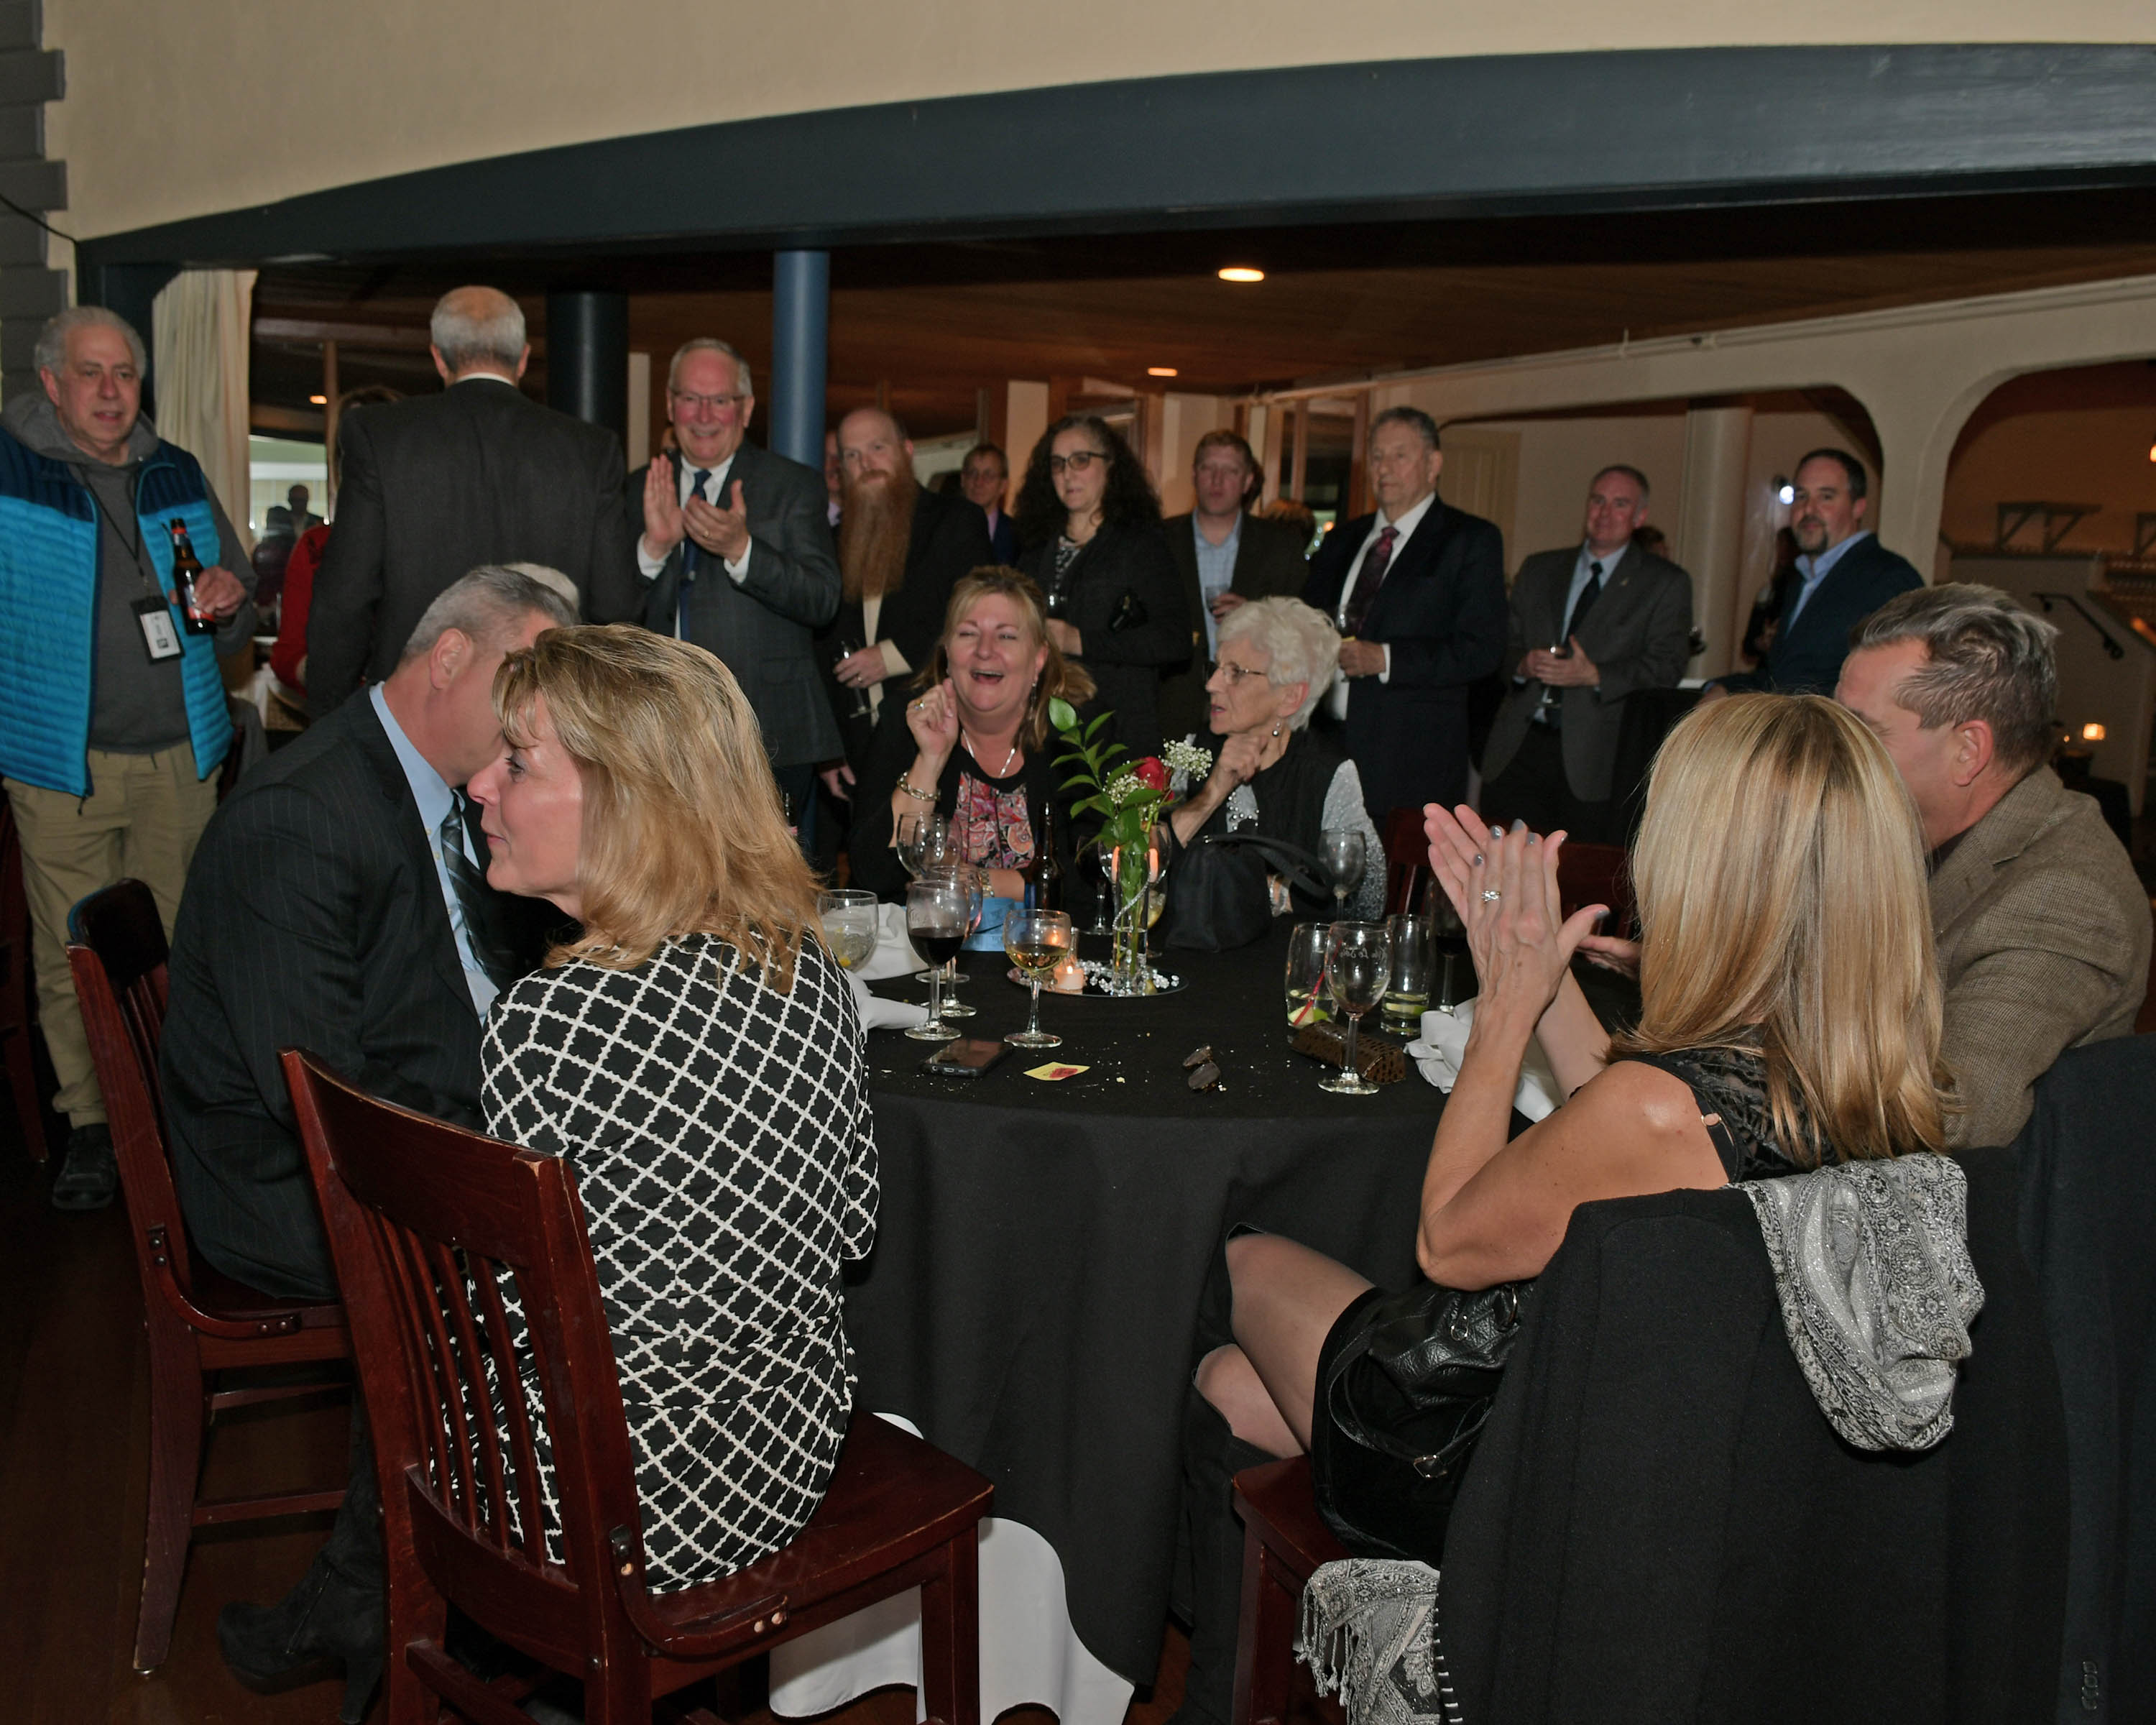 Vin Le Soir to benefit AIM Services, Inc. group of people at table for wine tasting